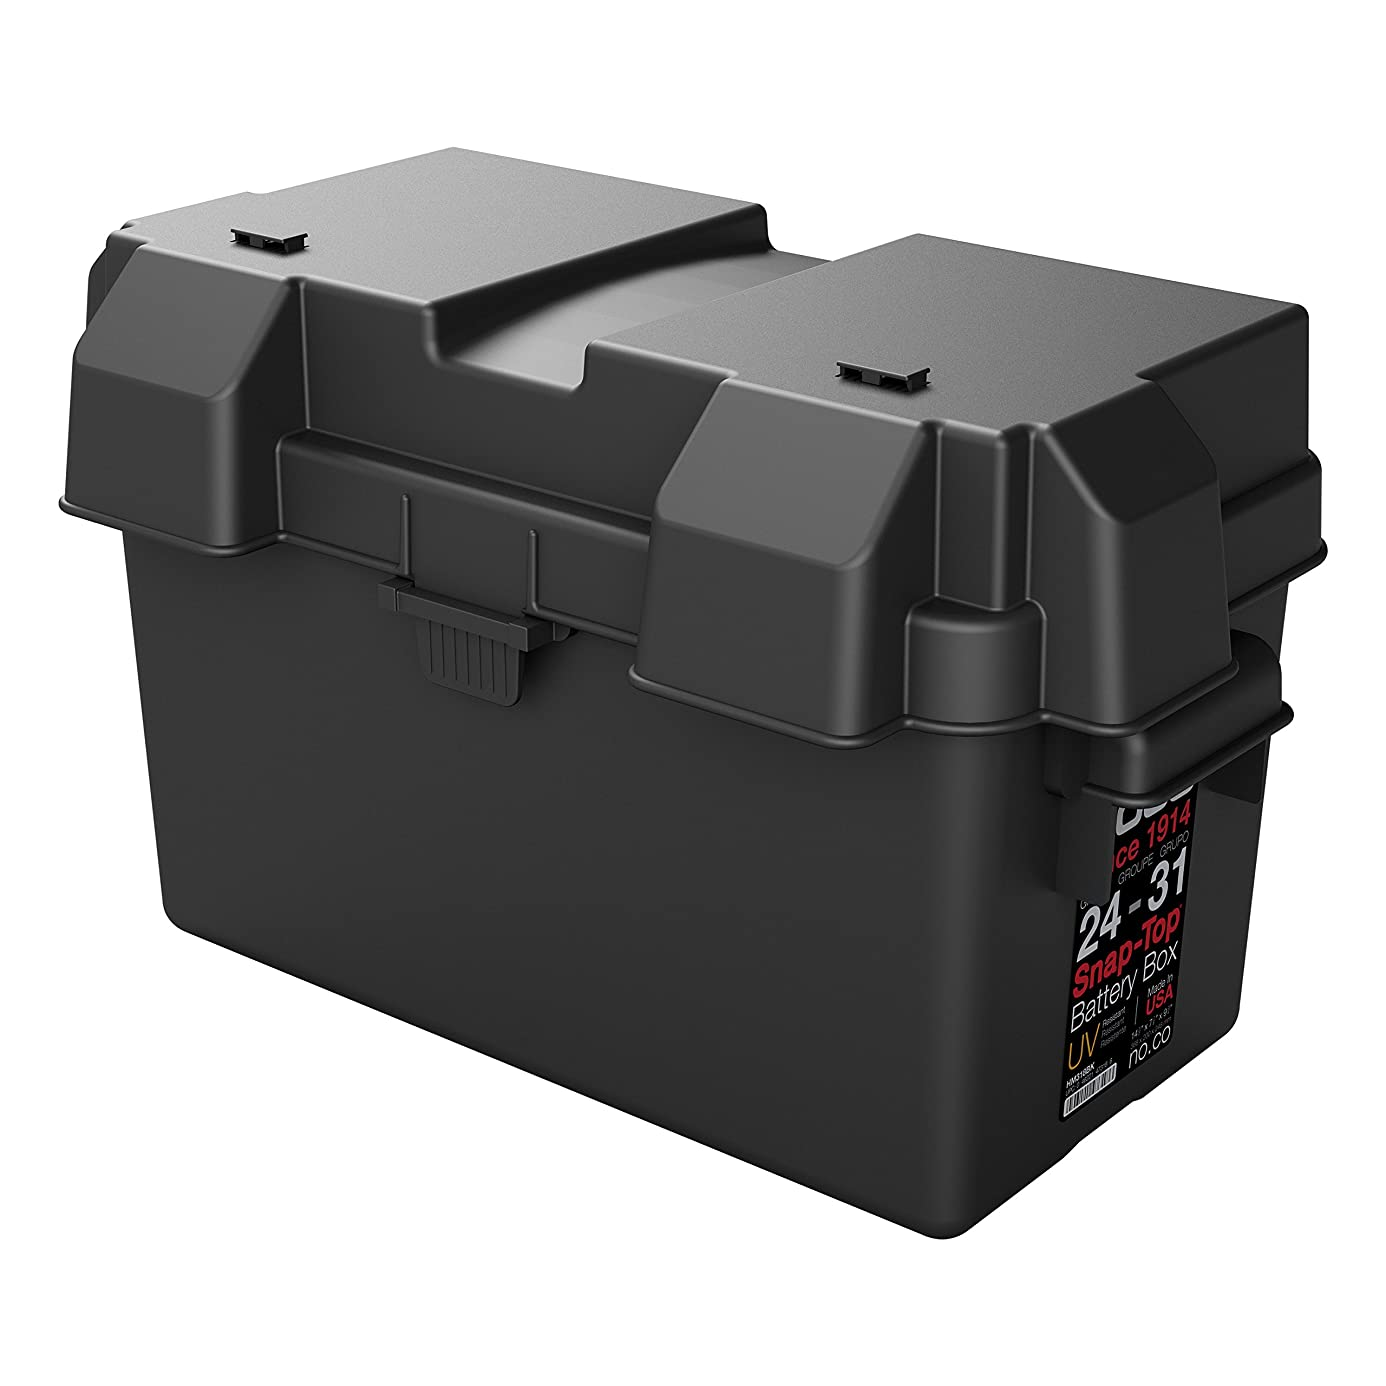 NOCO Black HM318BKS Group 24-31 Snap-Top Box for Automotive, Marine, and RV Batteries kwy3772448